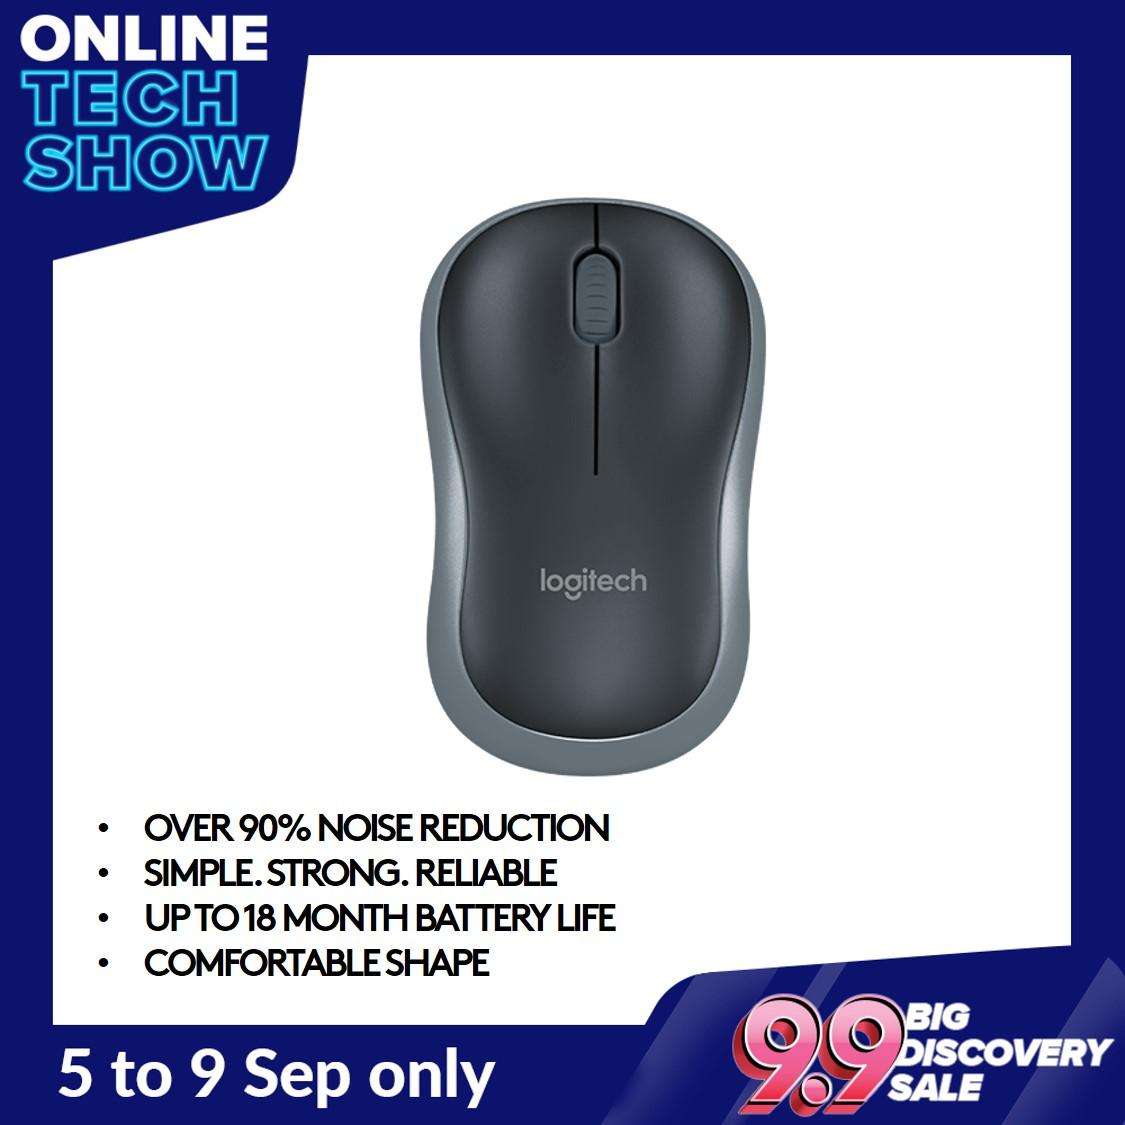 Logitech M220 Silent Wireless Mobile Mouse - Charcoal (Online Exclusive)